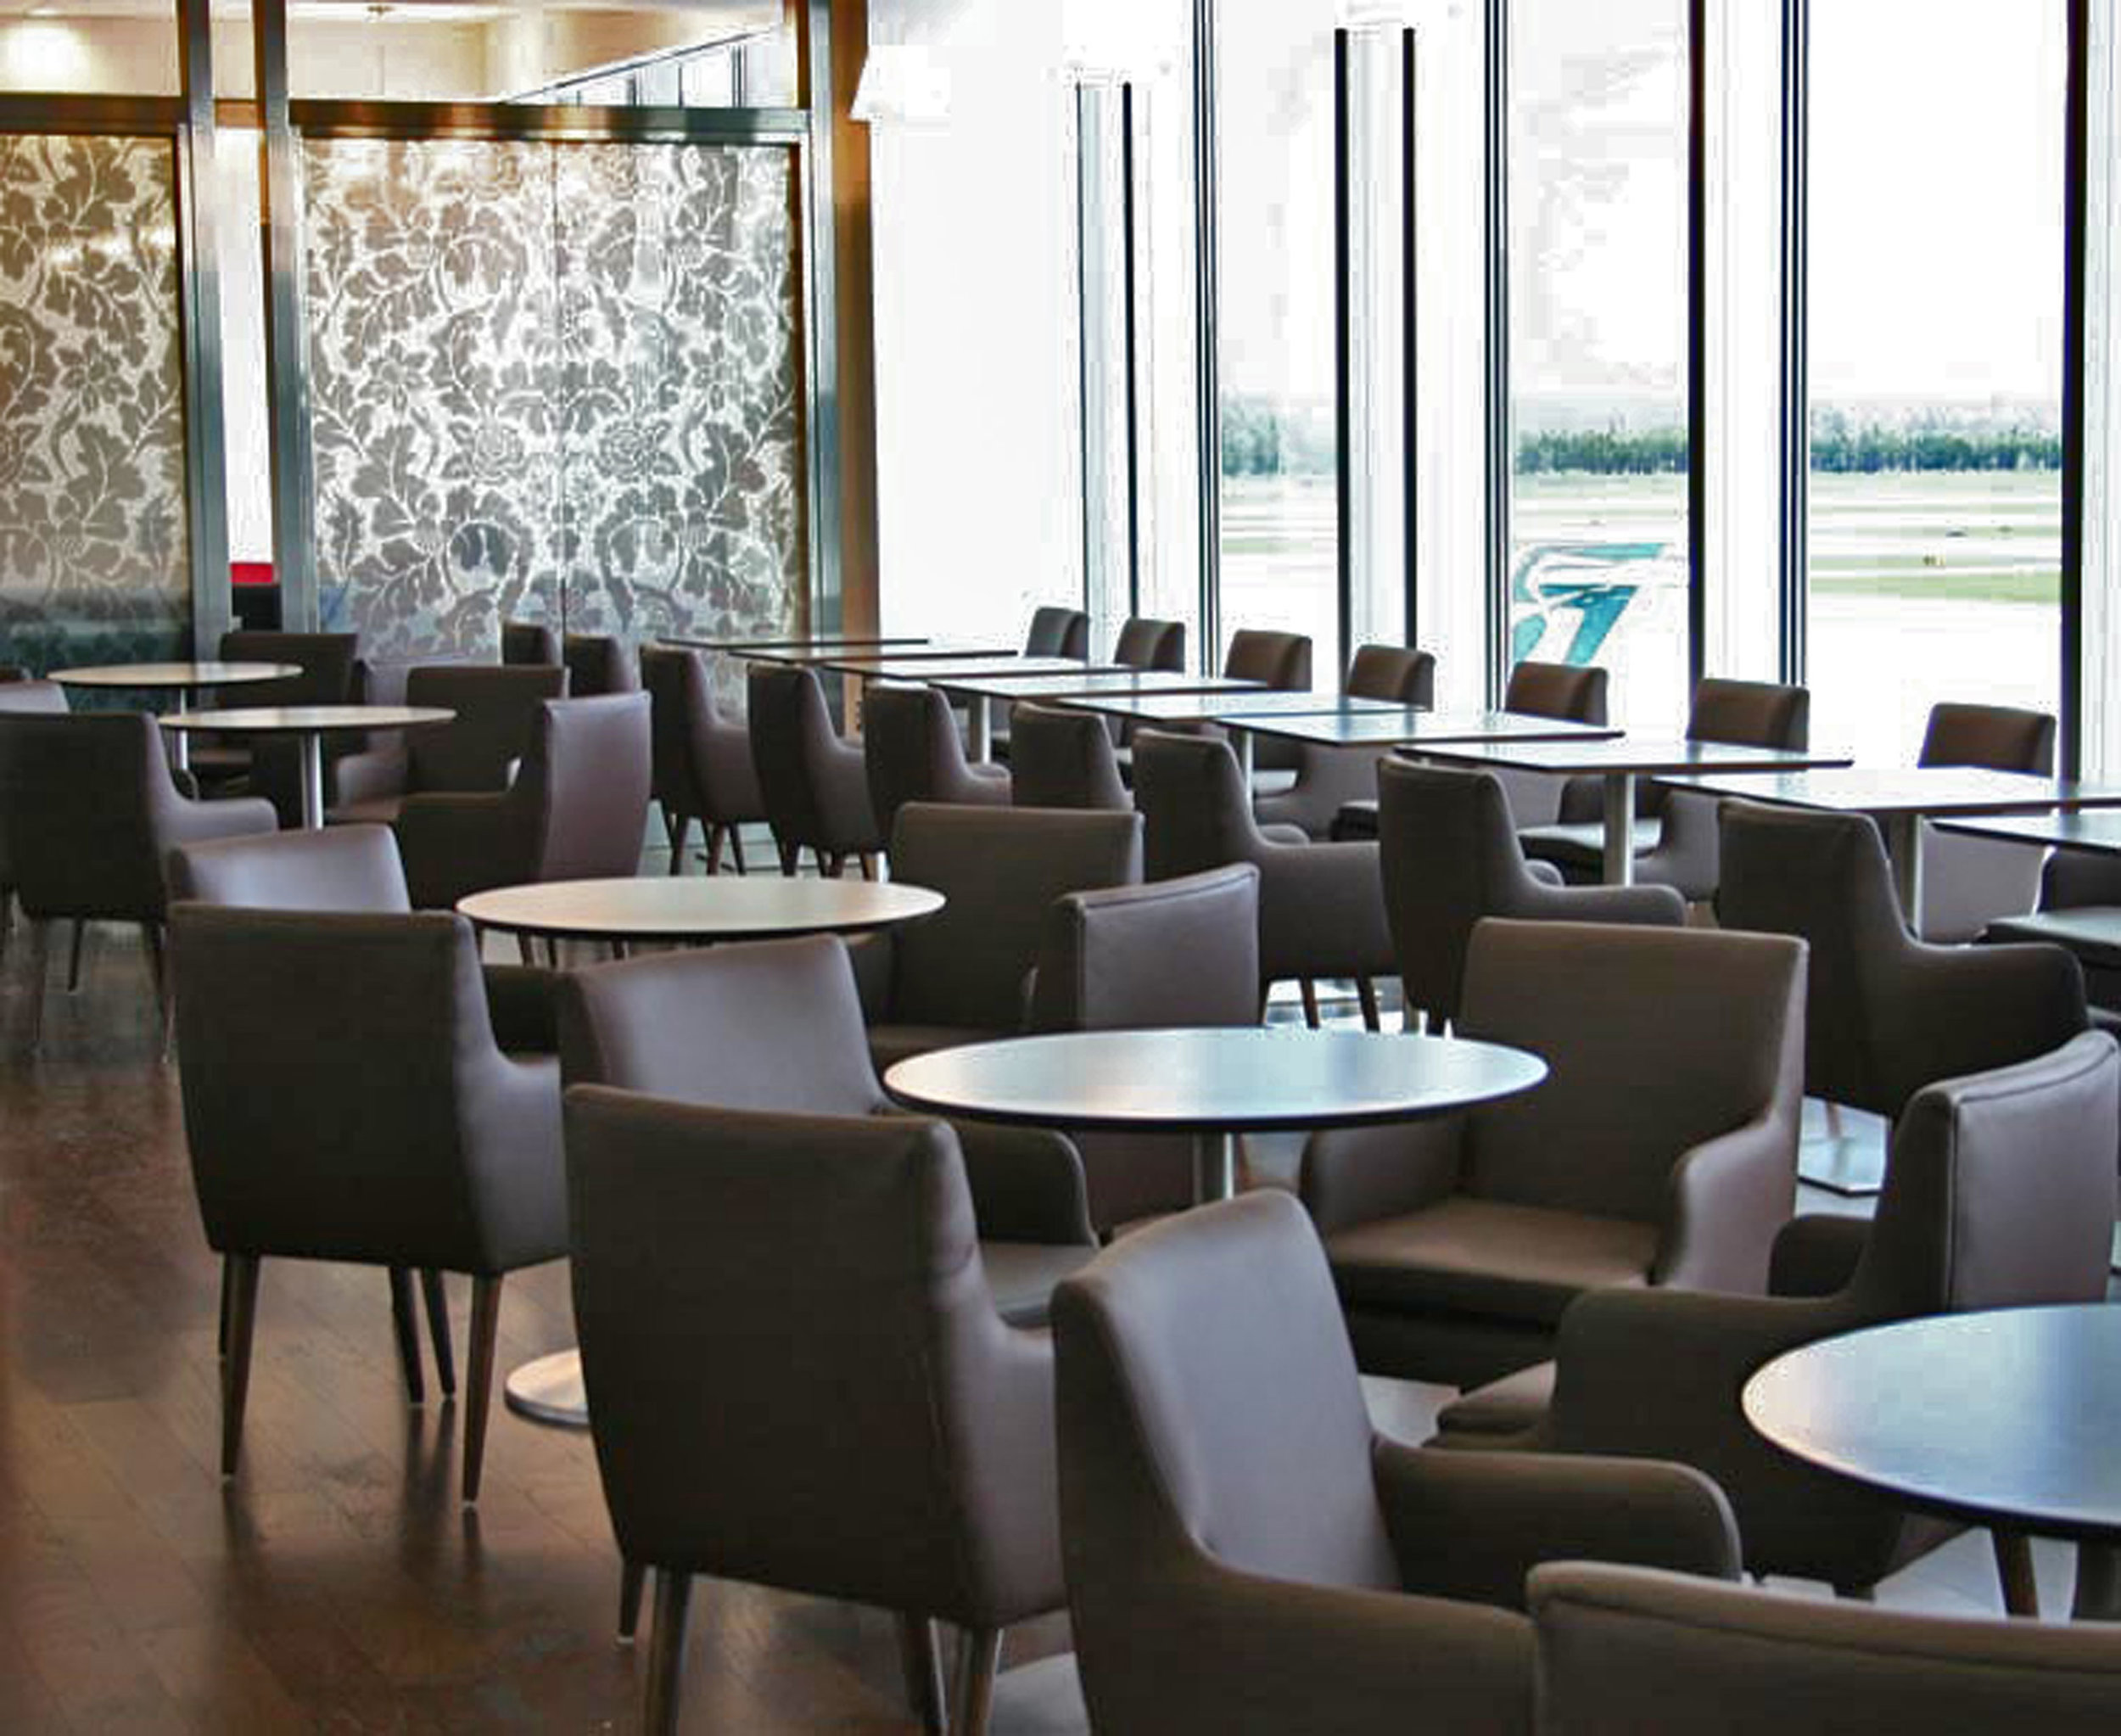 Furniture and Millwork at British Airways First Class Lounge Dulles Airport in Washington DC by Sentient Furniture